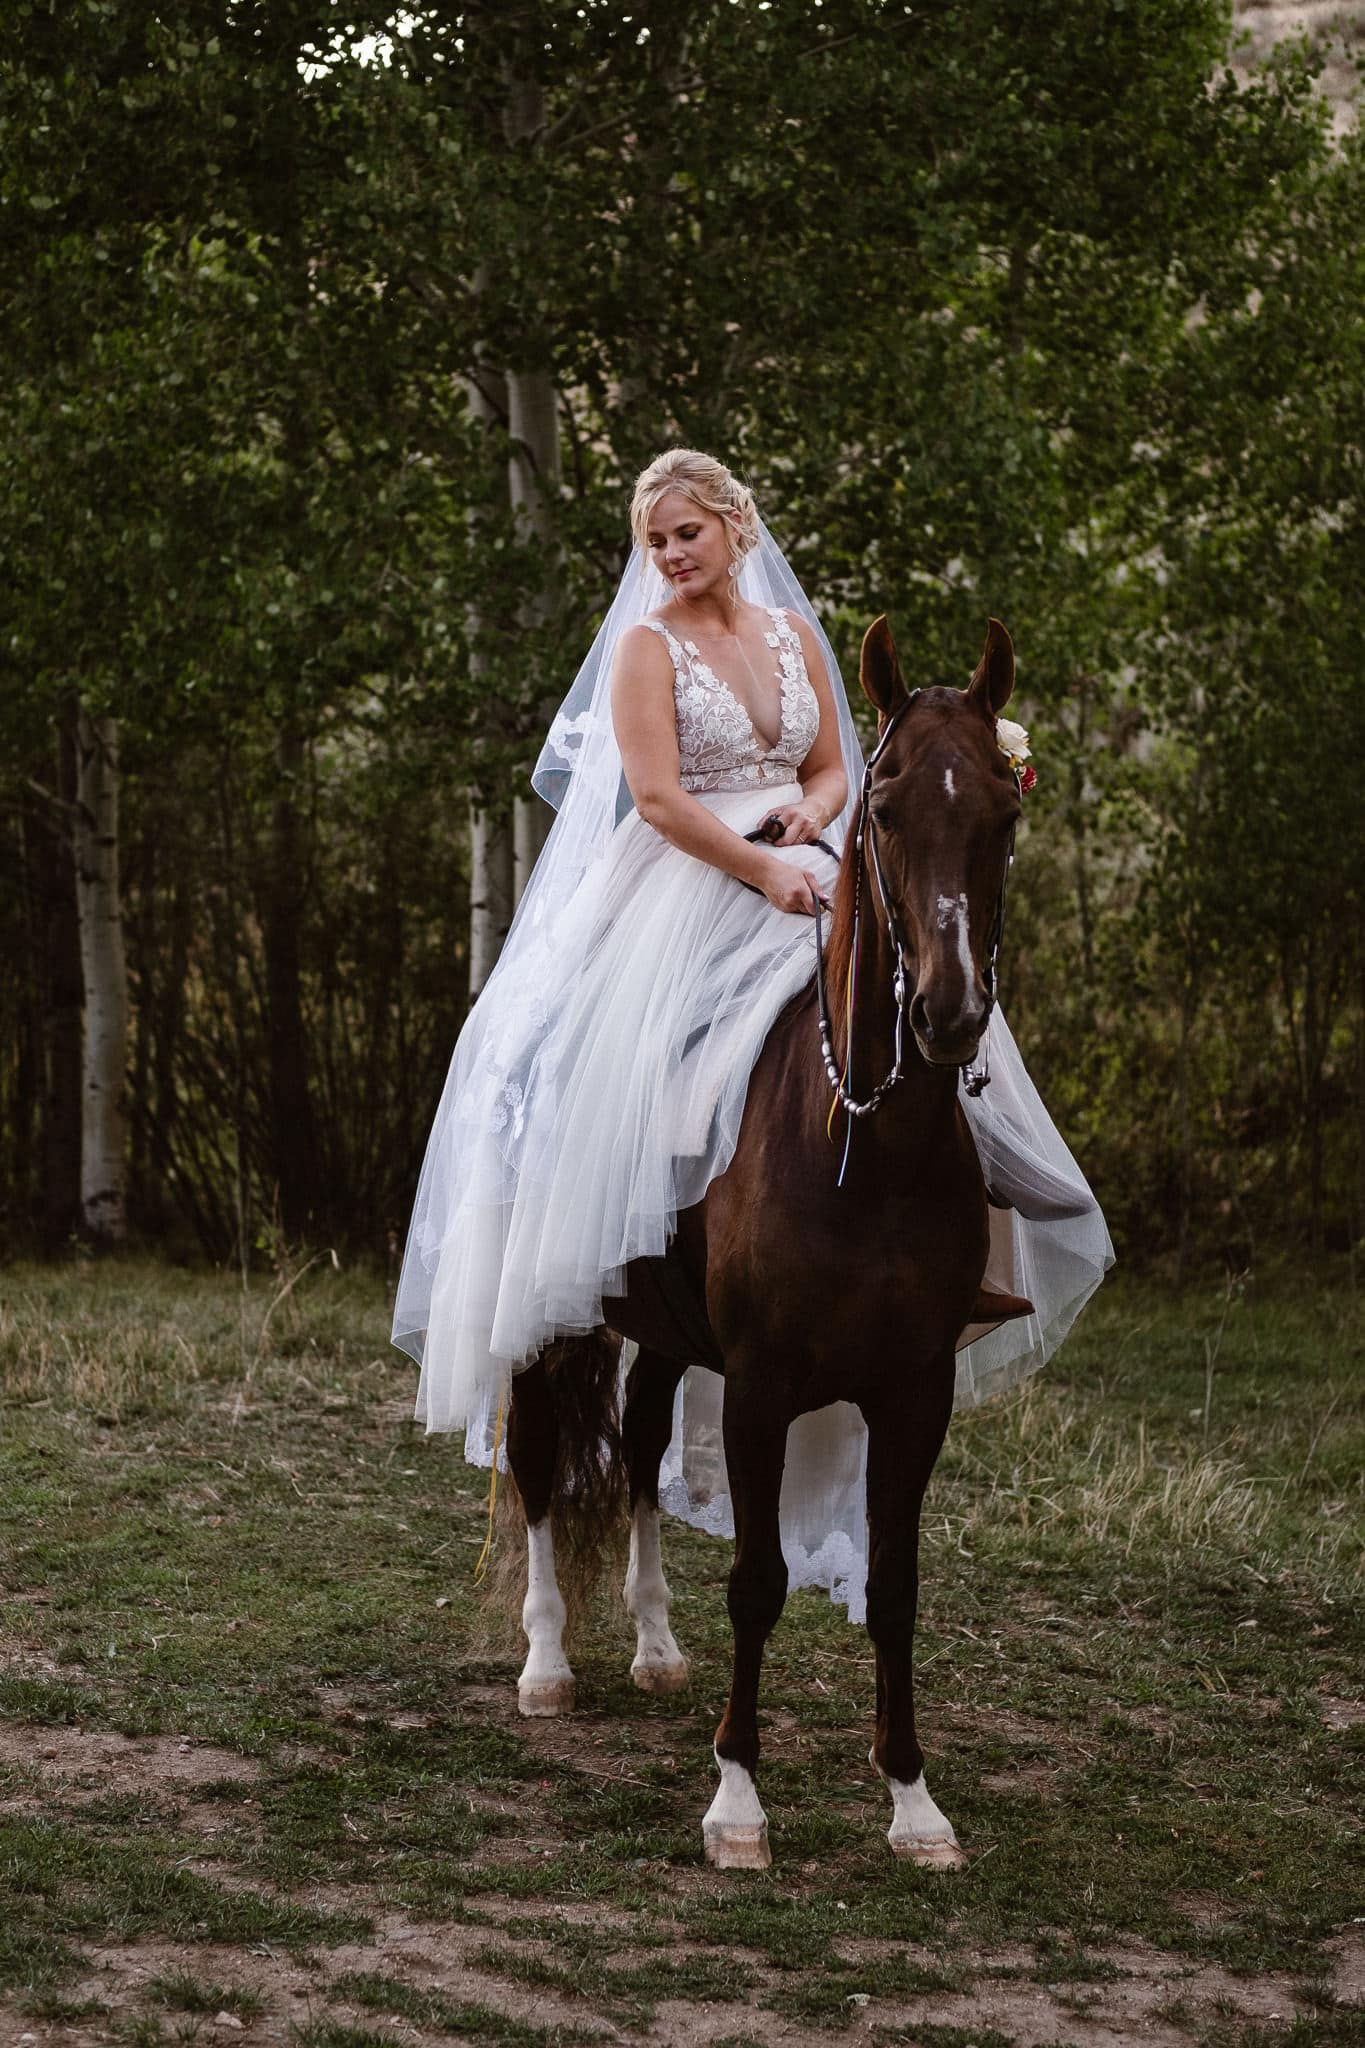 Steamboat Springs wedding photographer, La Joya Dulce wedding, Colorado ranch wedding venues, outdoor wedding ceremony, Colorado wedding, Rocky Mountain wedding, ranch wedding, bride riding horse